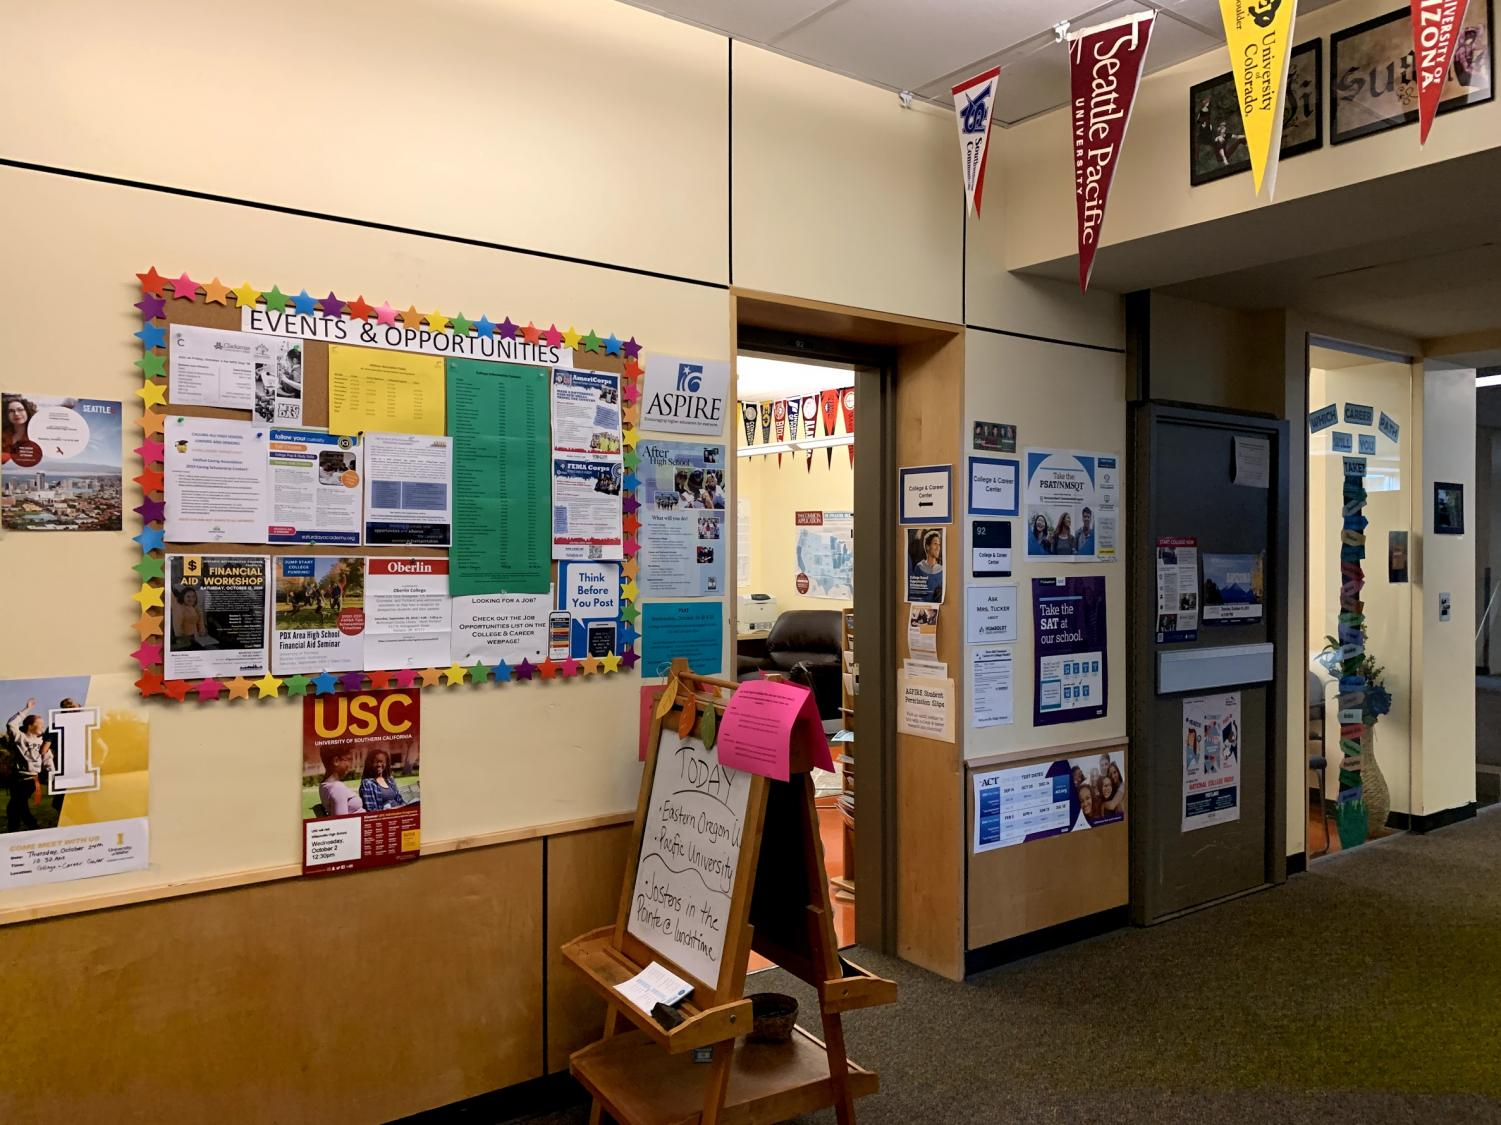 The College and Career center, located in room 92 across from the 2d art studio.